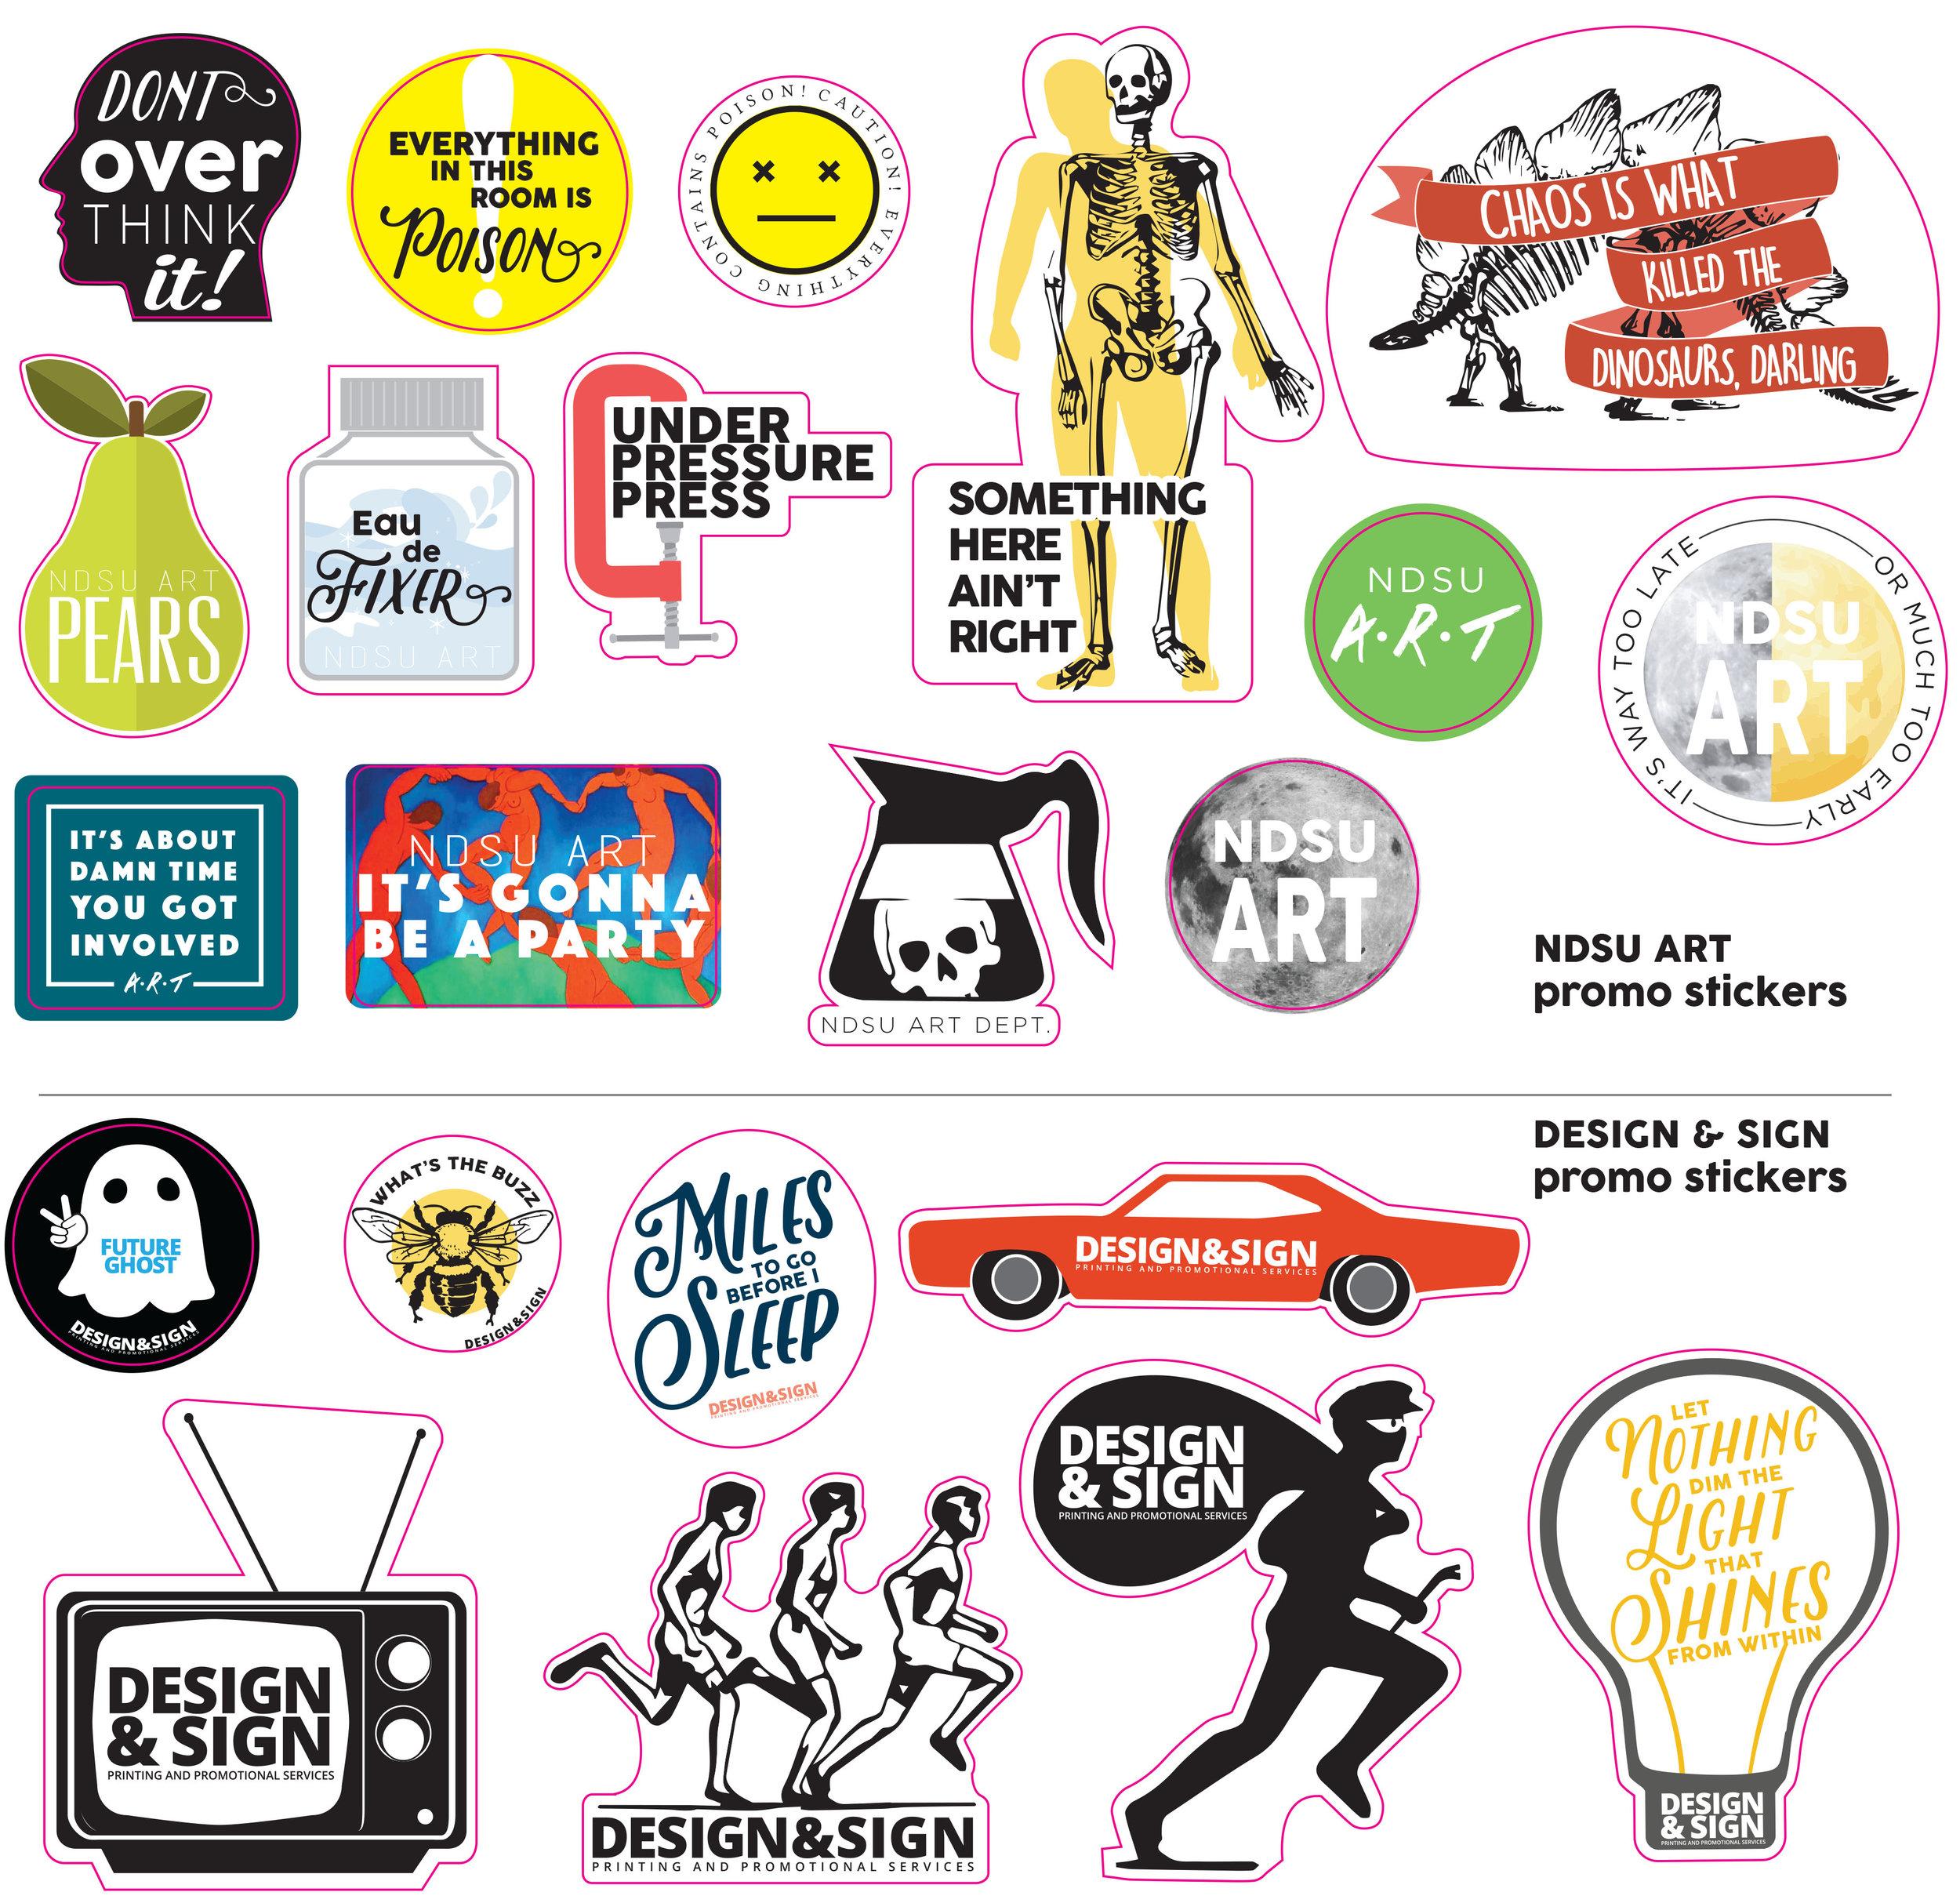 - Promotional stickers